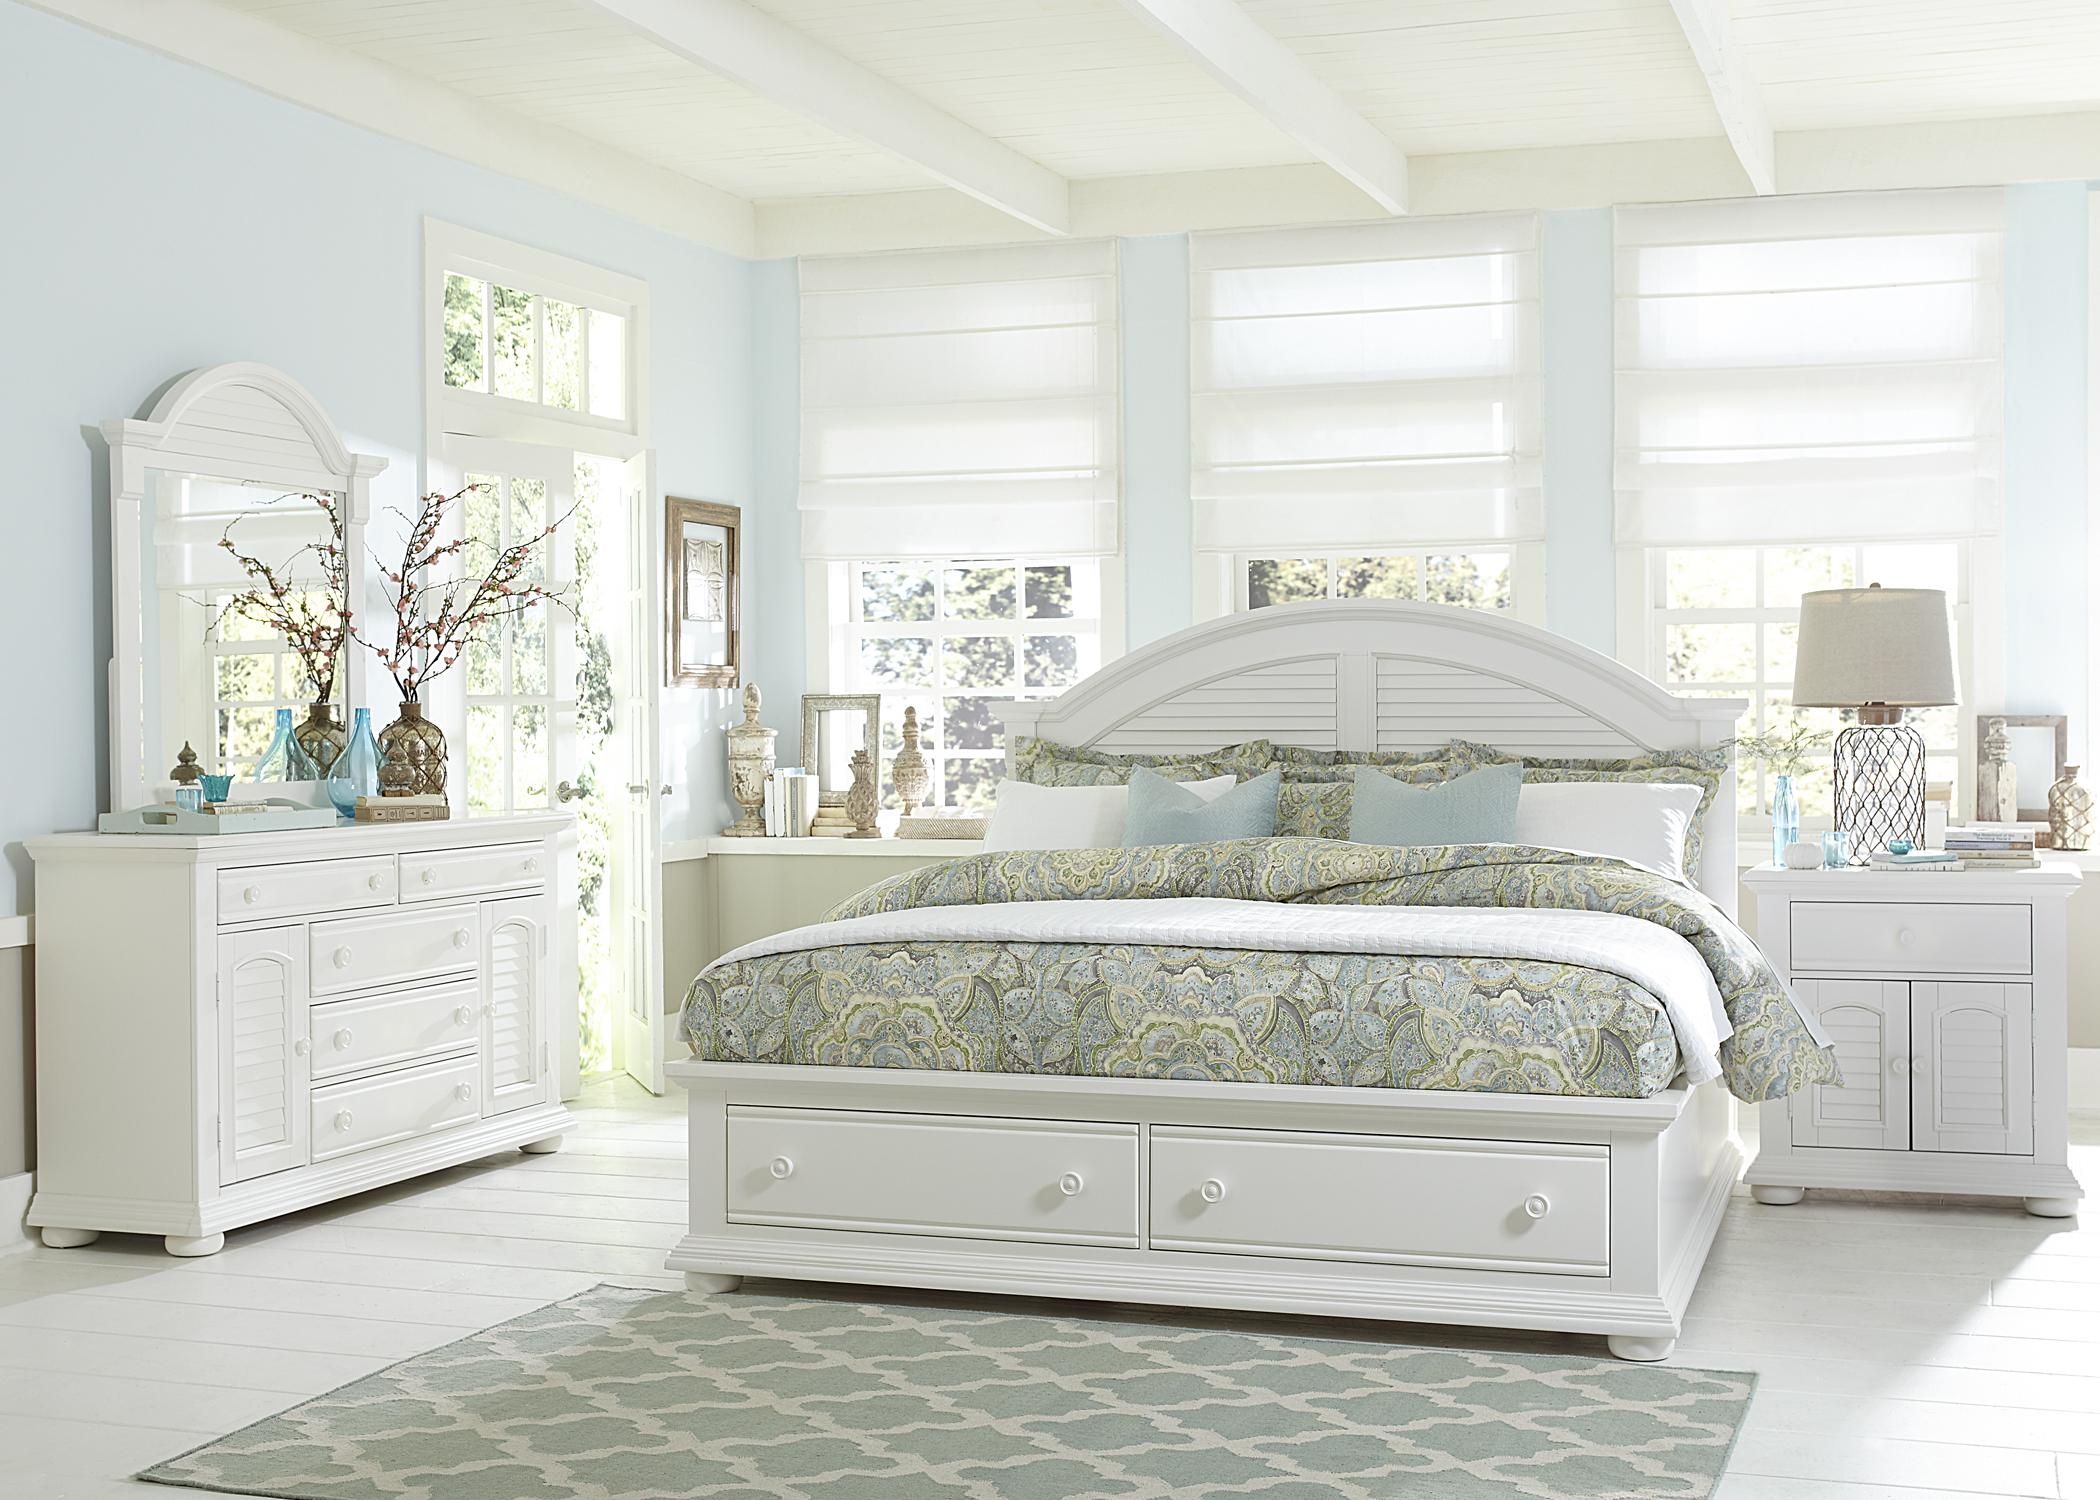 Bedroom Sets With Storage Beds cottage queen bed with storage footboardliberty furniture